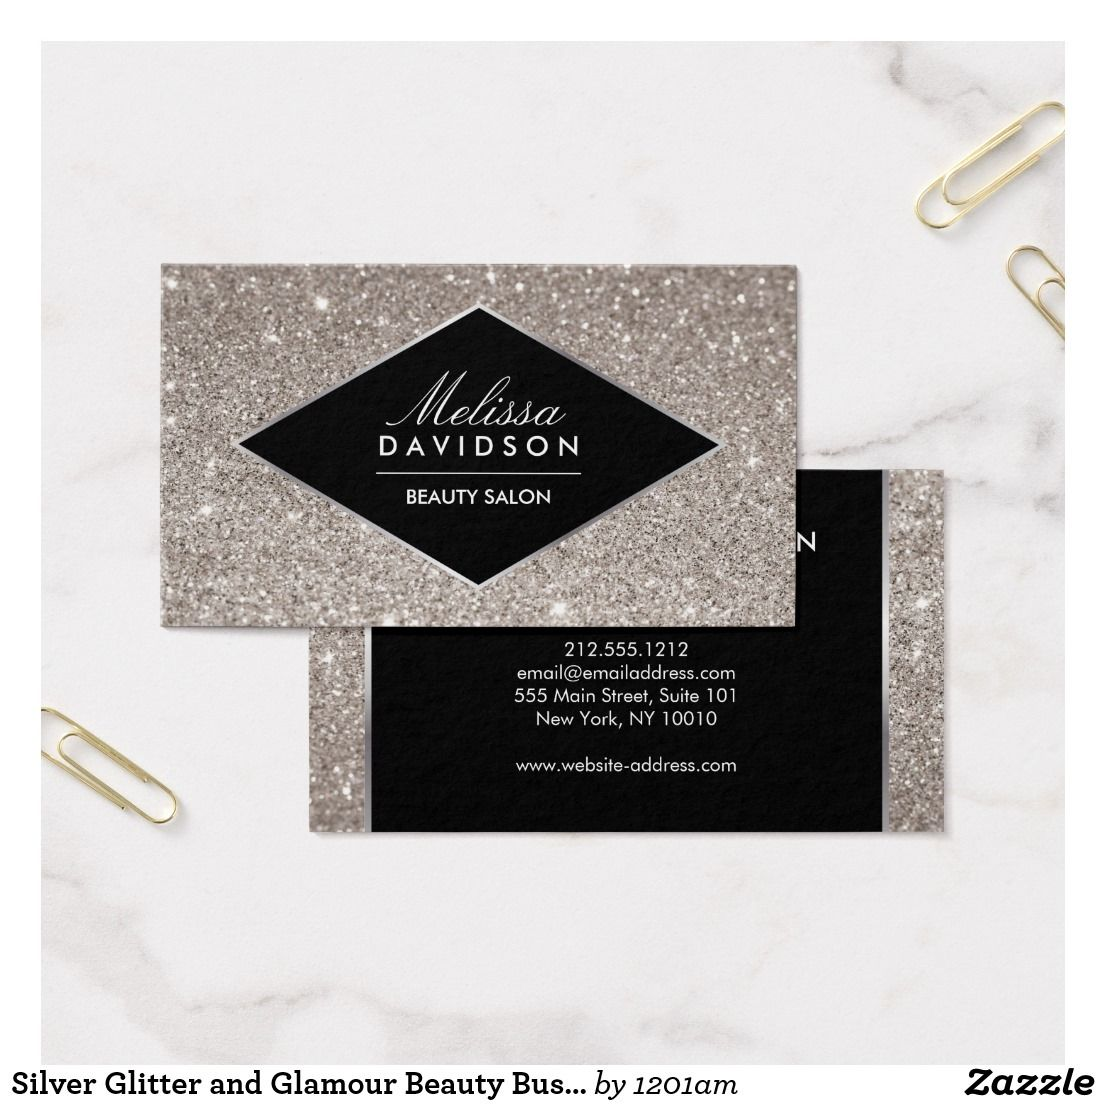 Silver Glitter and Glamour Beauty Business Card   Beauty business ...